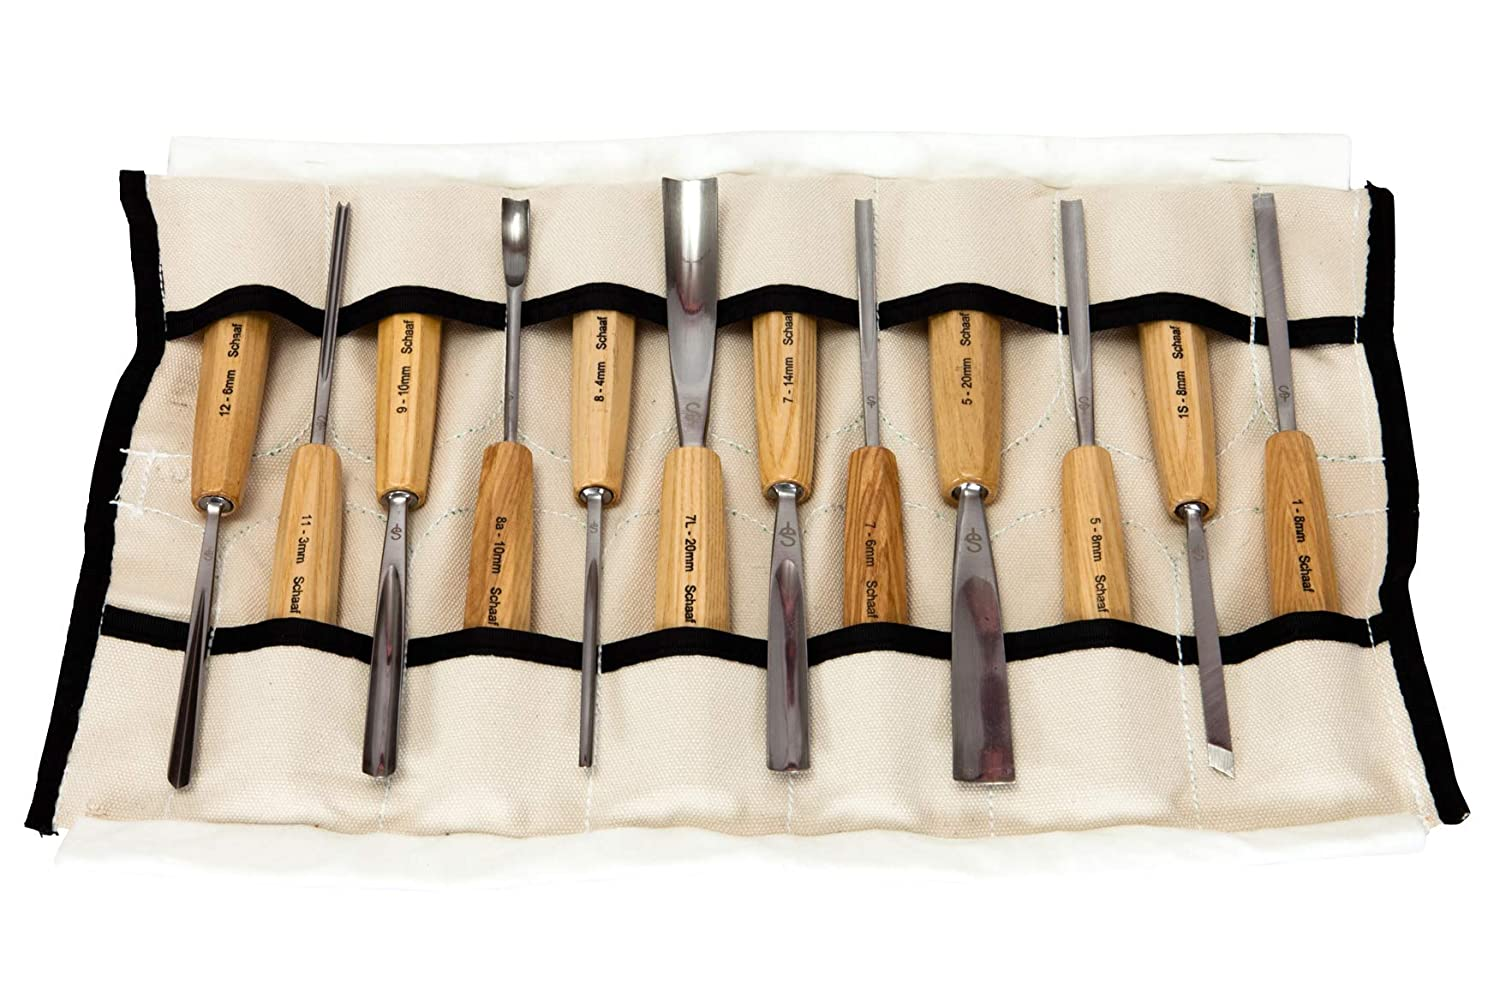 SCHAAF Full Size Wood Carving Tools, Set of 12 Warmhoming